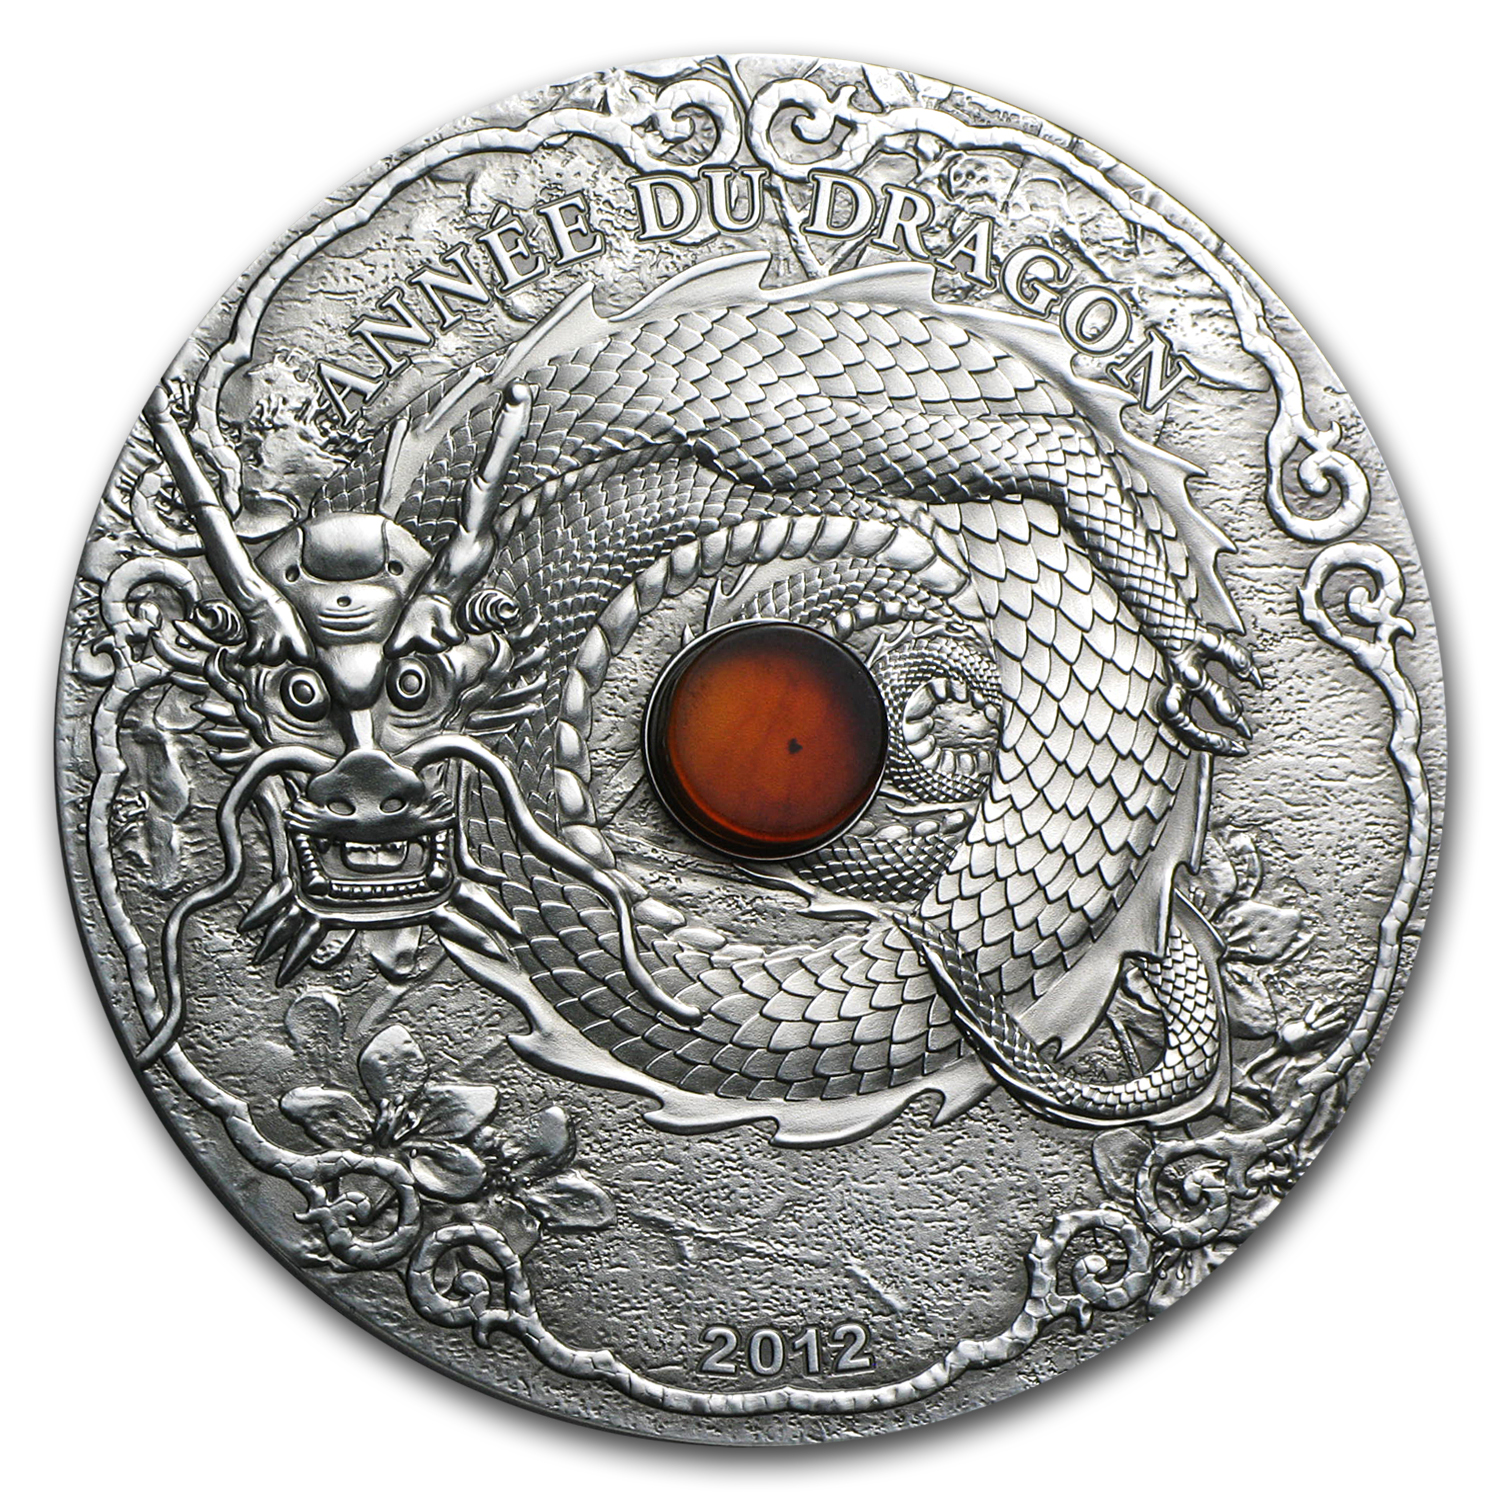 Togo 2012 Silver 2 oz Year of the Dragon - Amber